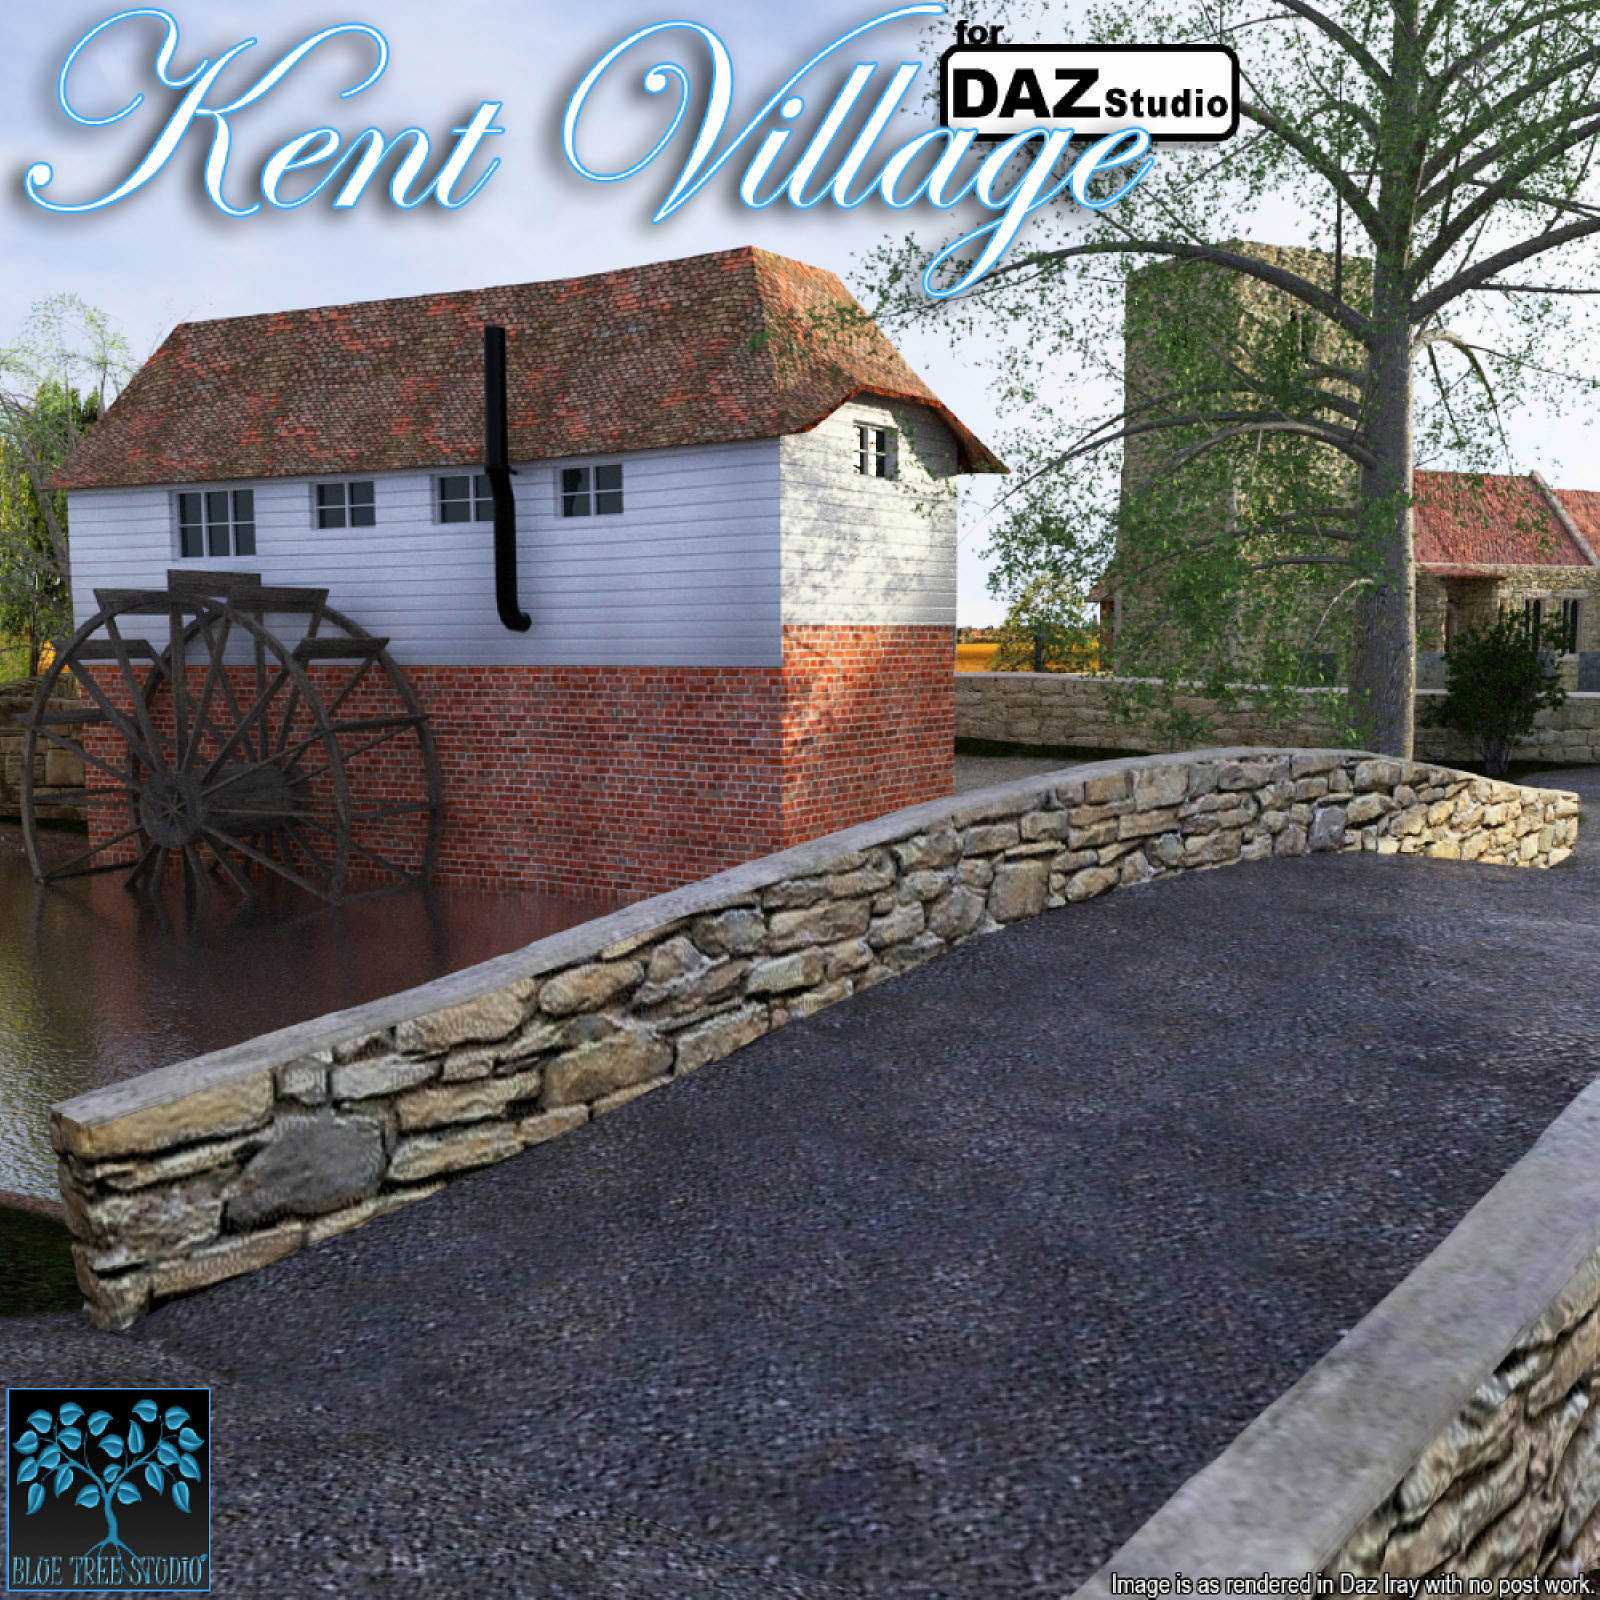 Kent Village for Daz by BlueTreeStudio